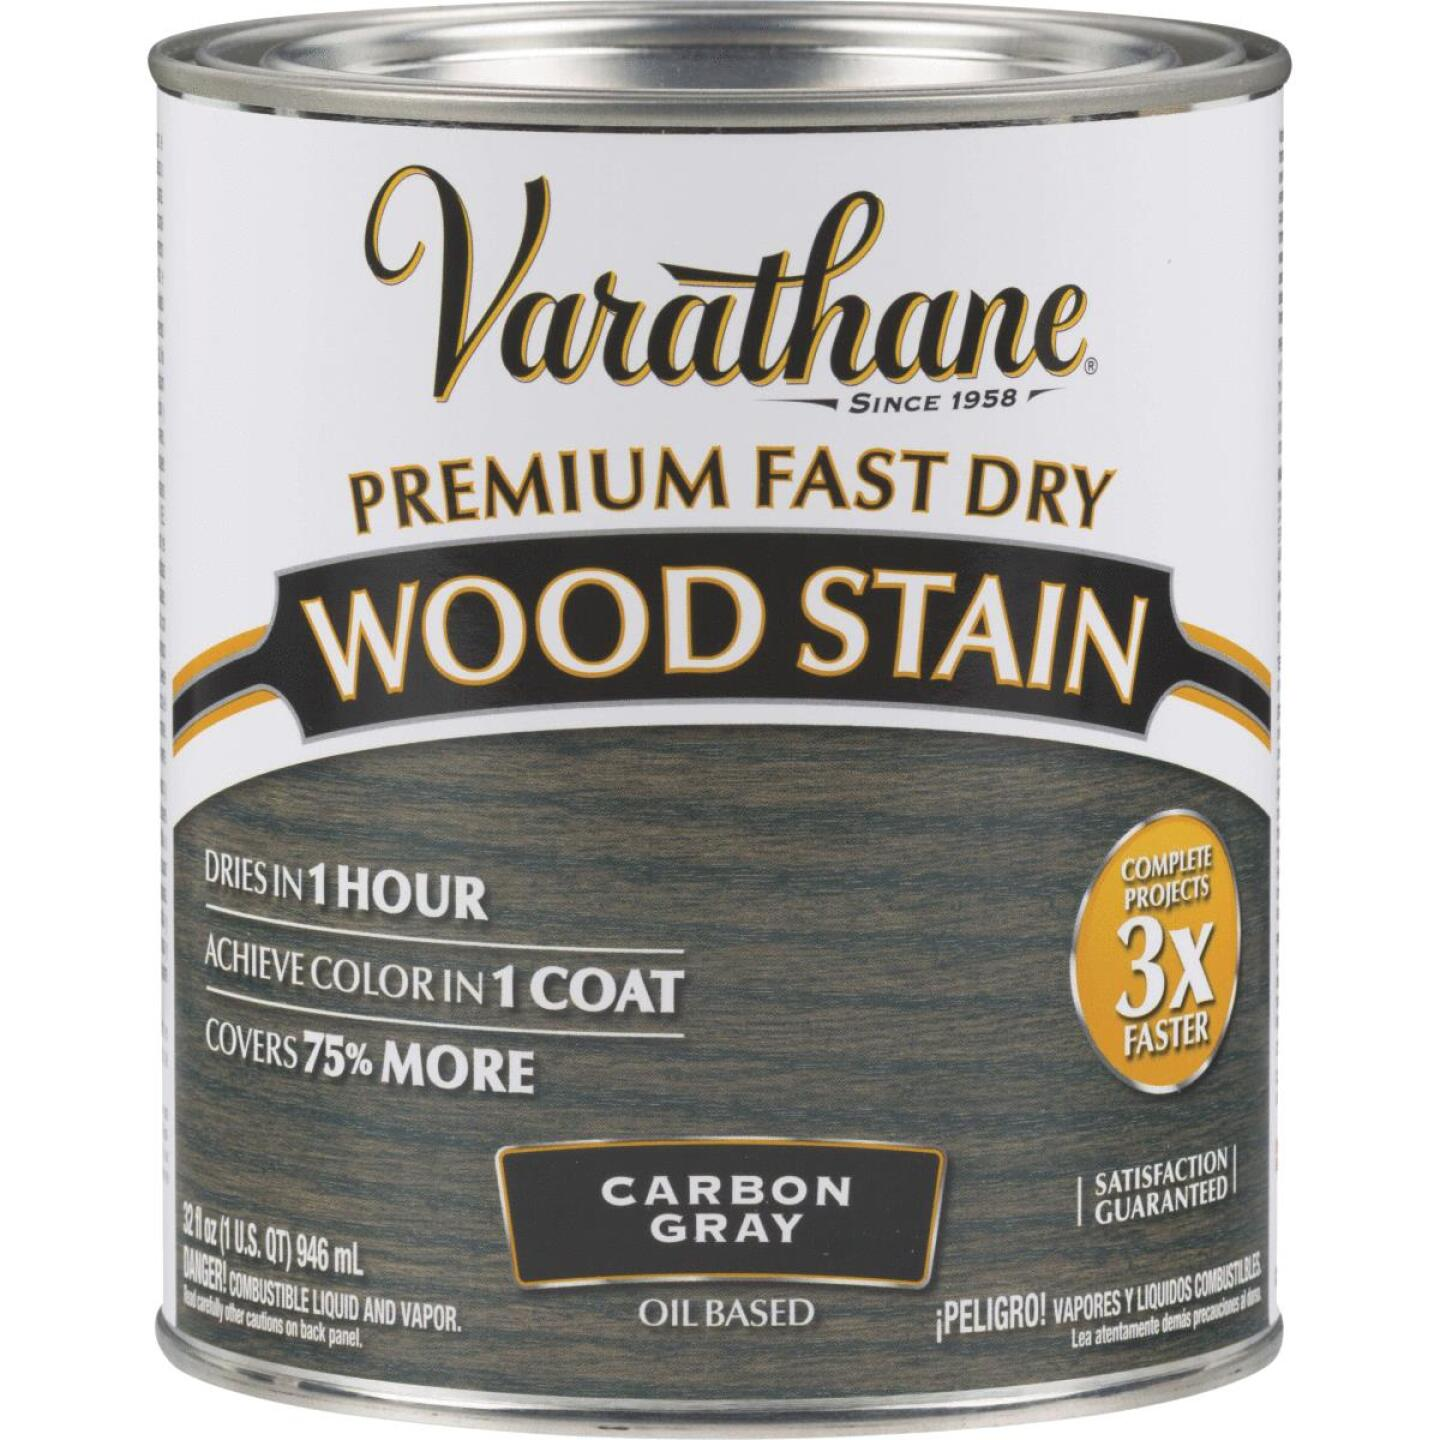 Varathane Fast Dry Carbon Gray Urethane Modified Alkyd Interior Wood Stain, 1 Qt. Image 1